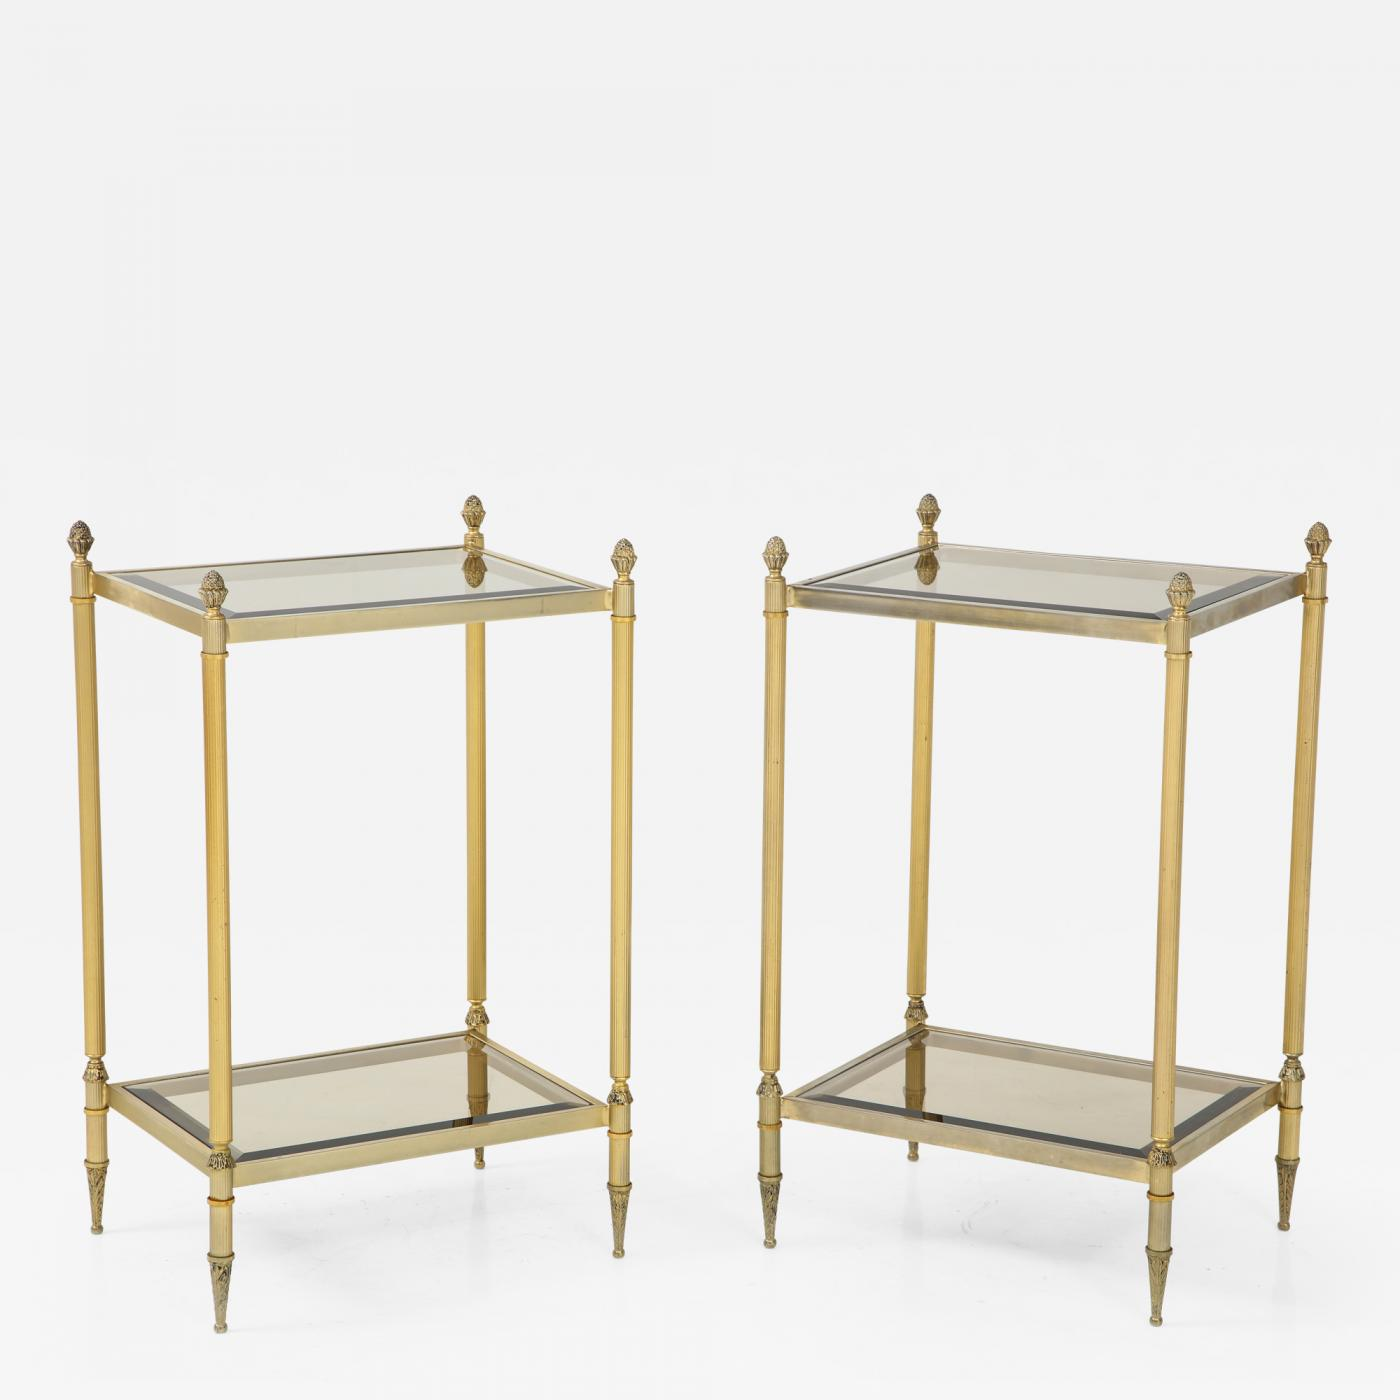 pair mid century brass glass end tables table listings furniture side tainoki small accessory ethan allen american dimensions universal inc powell dining chair laura ashley set